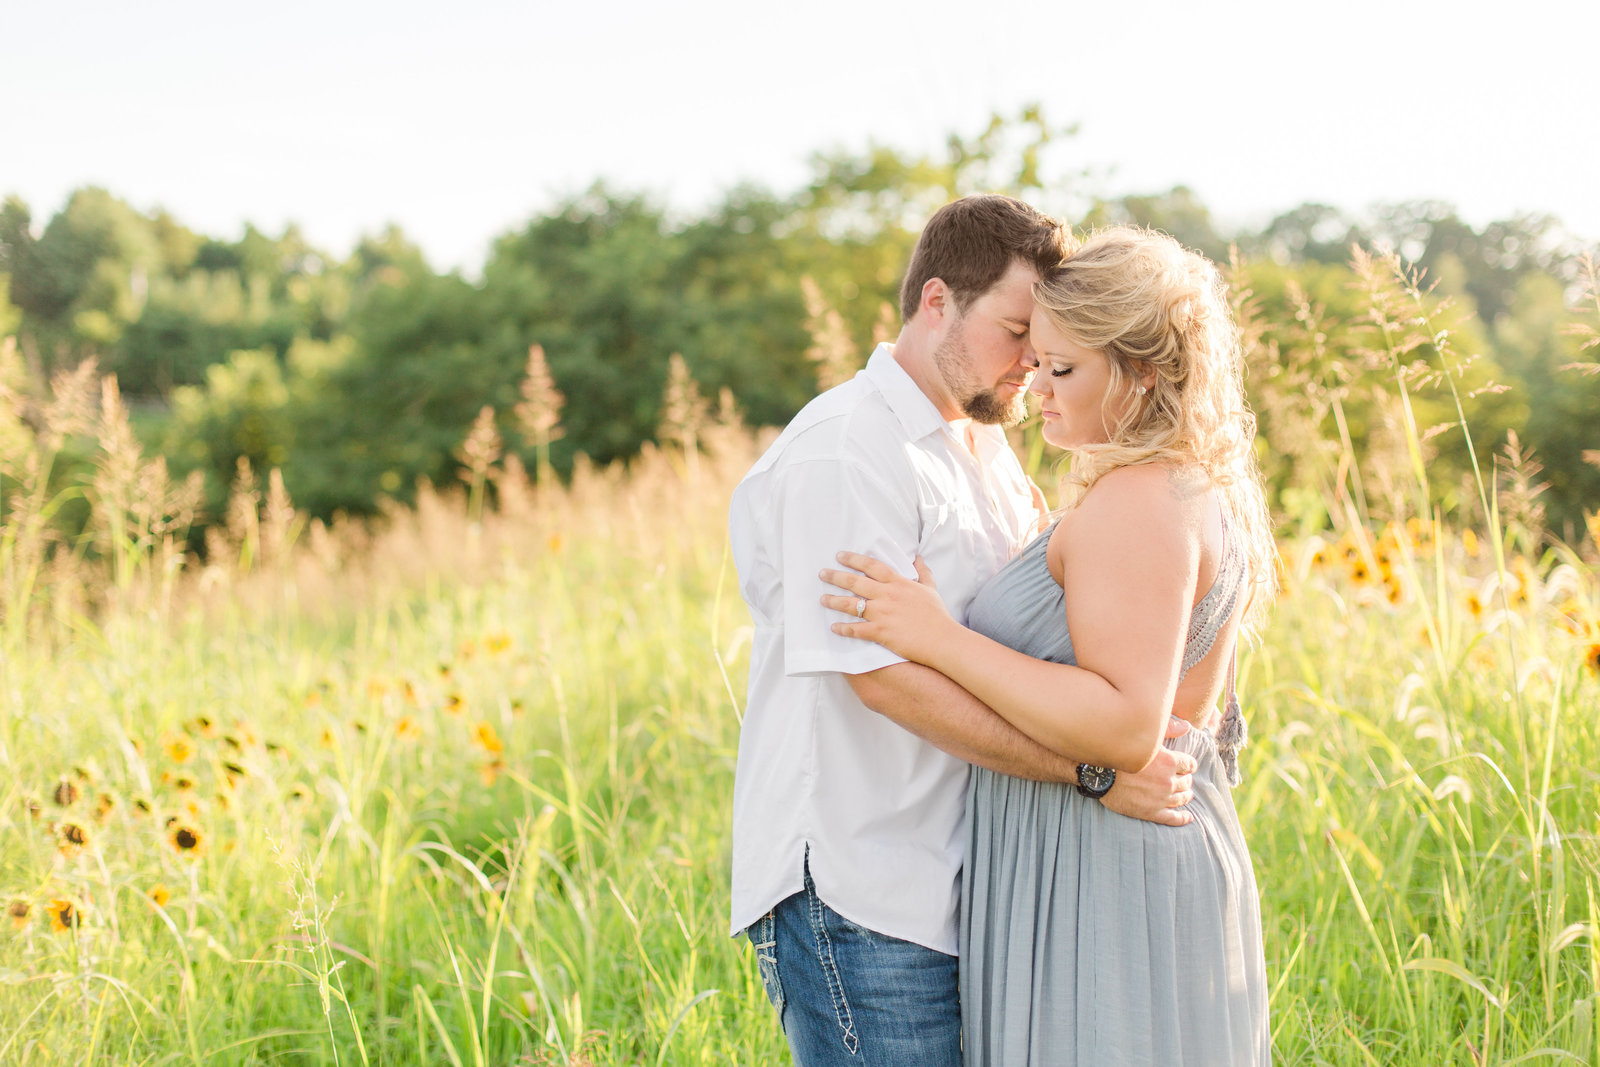 honeycreekfarmsdandridgetnengagement22163